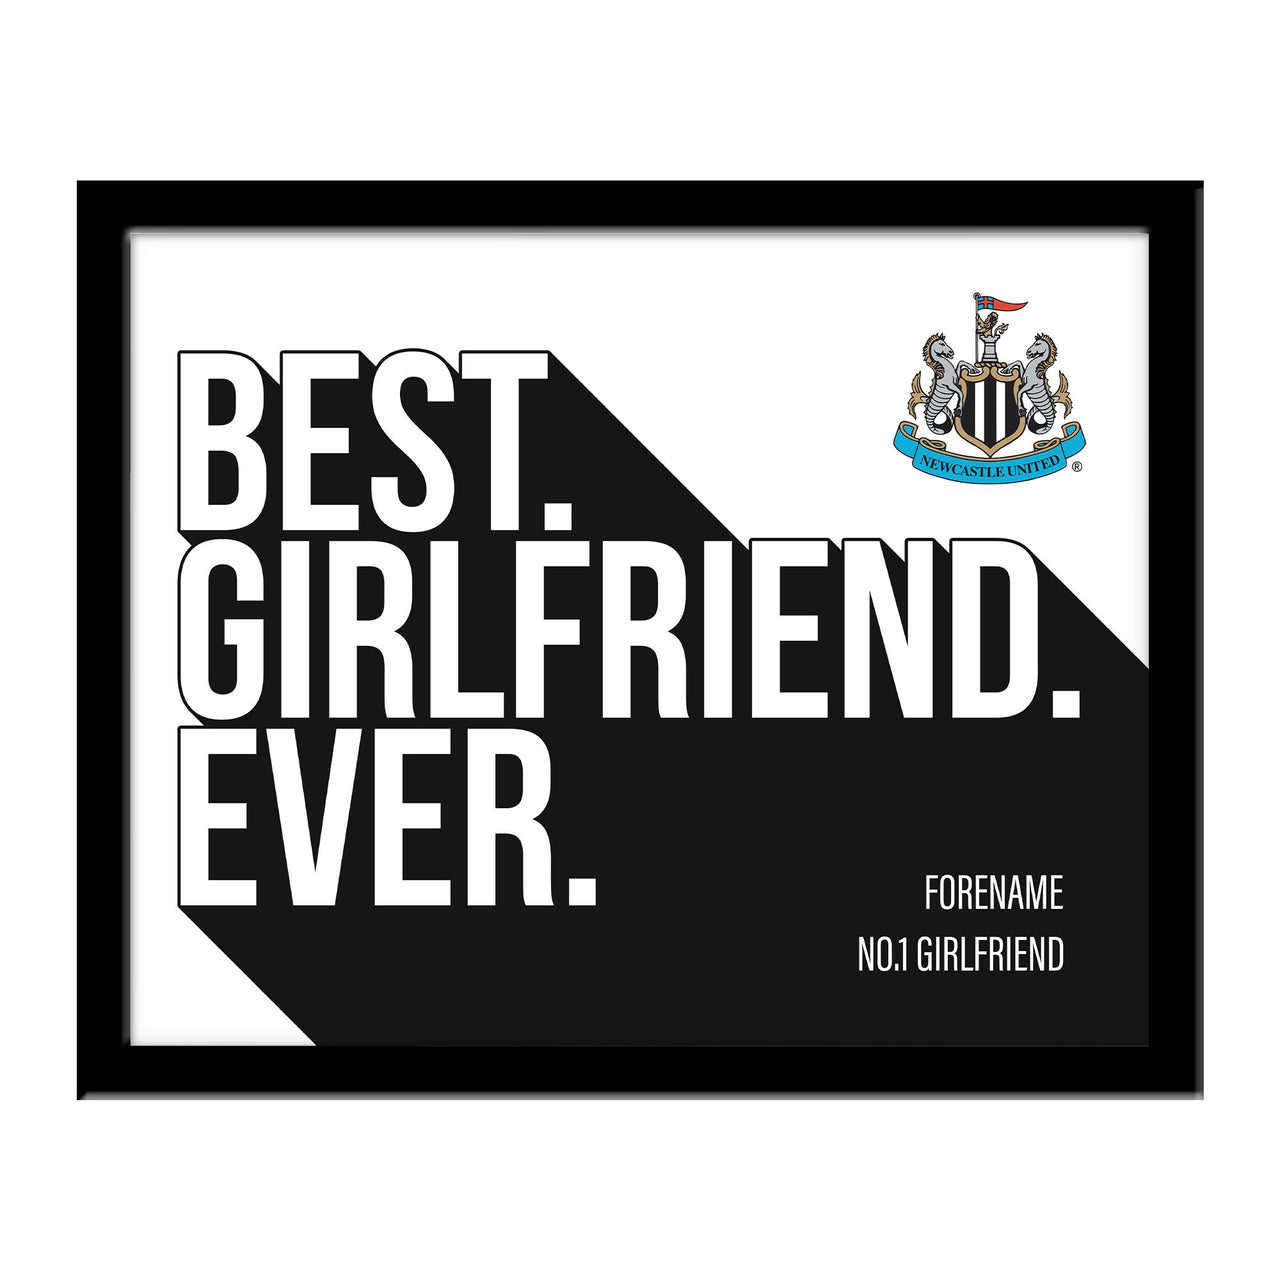 Newcastle United Best Girlfriend Ever 10 x 8 Photo Framed